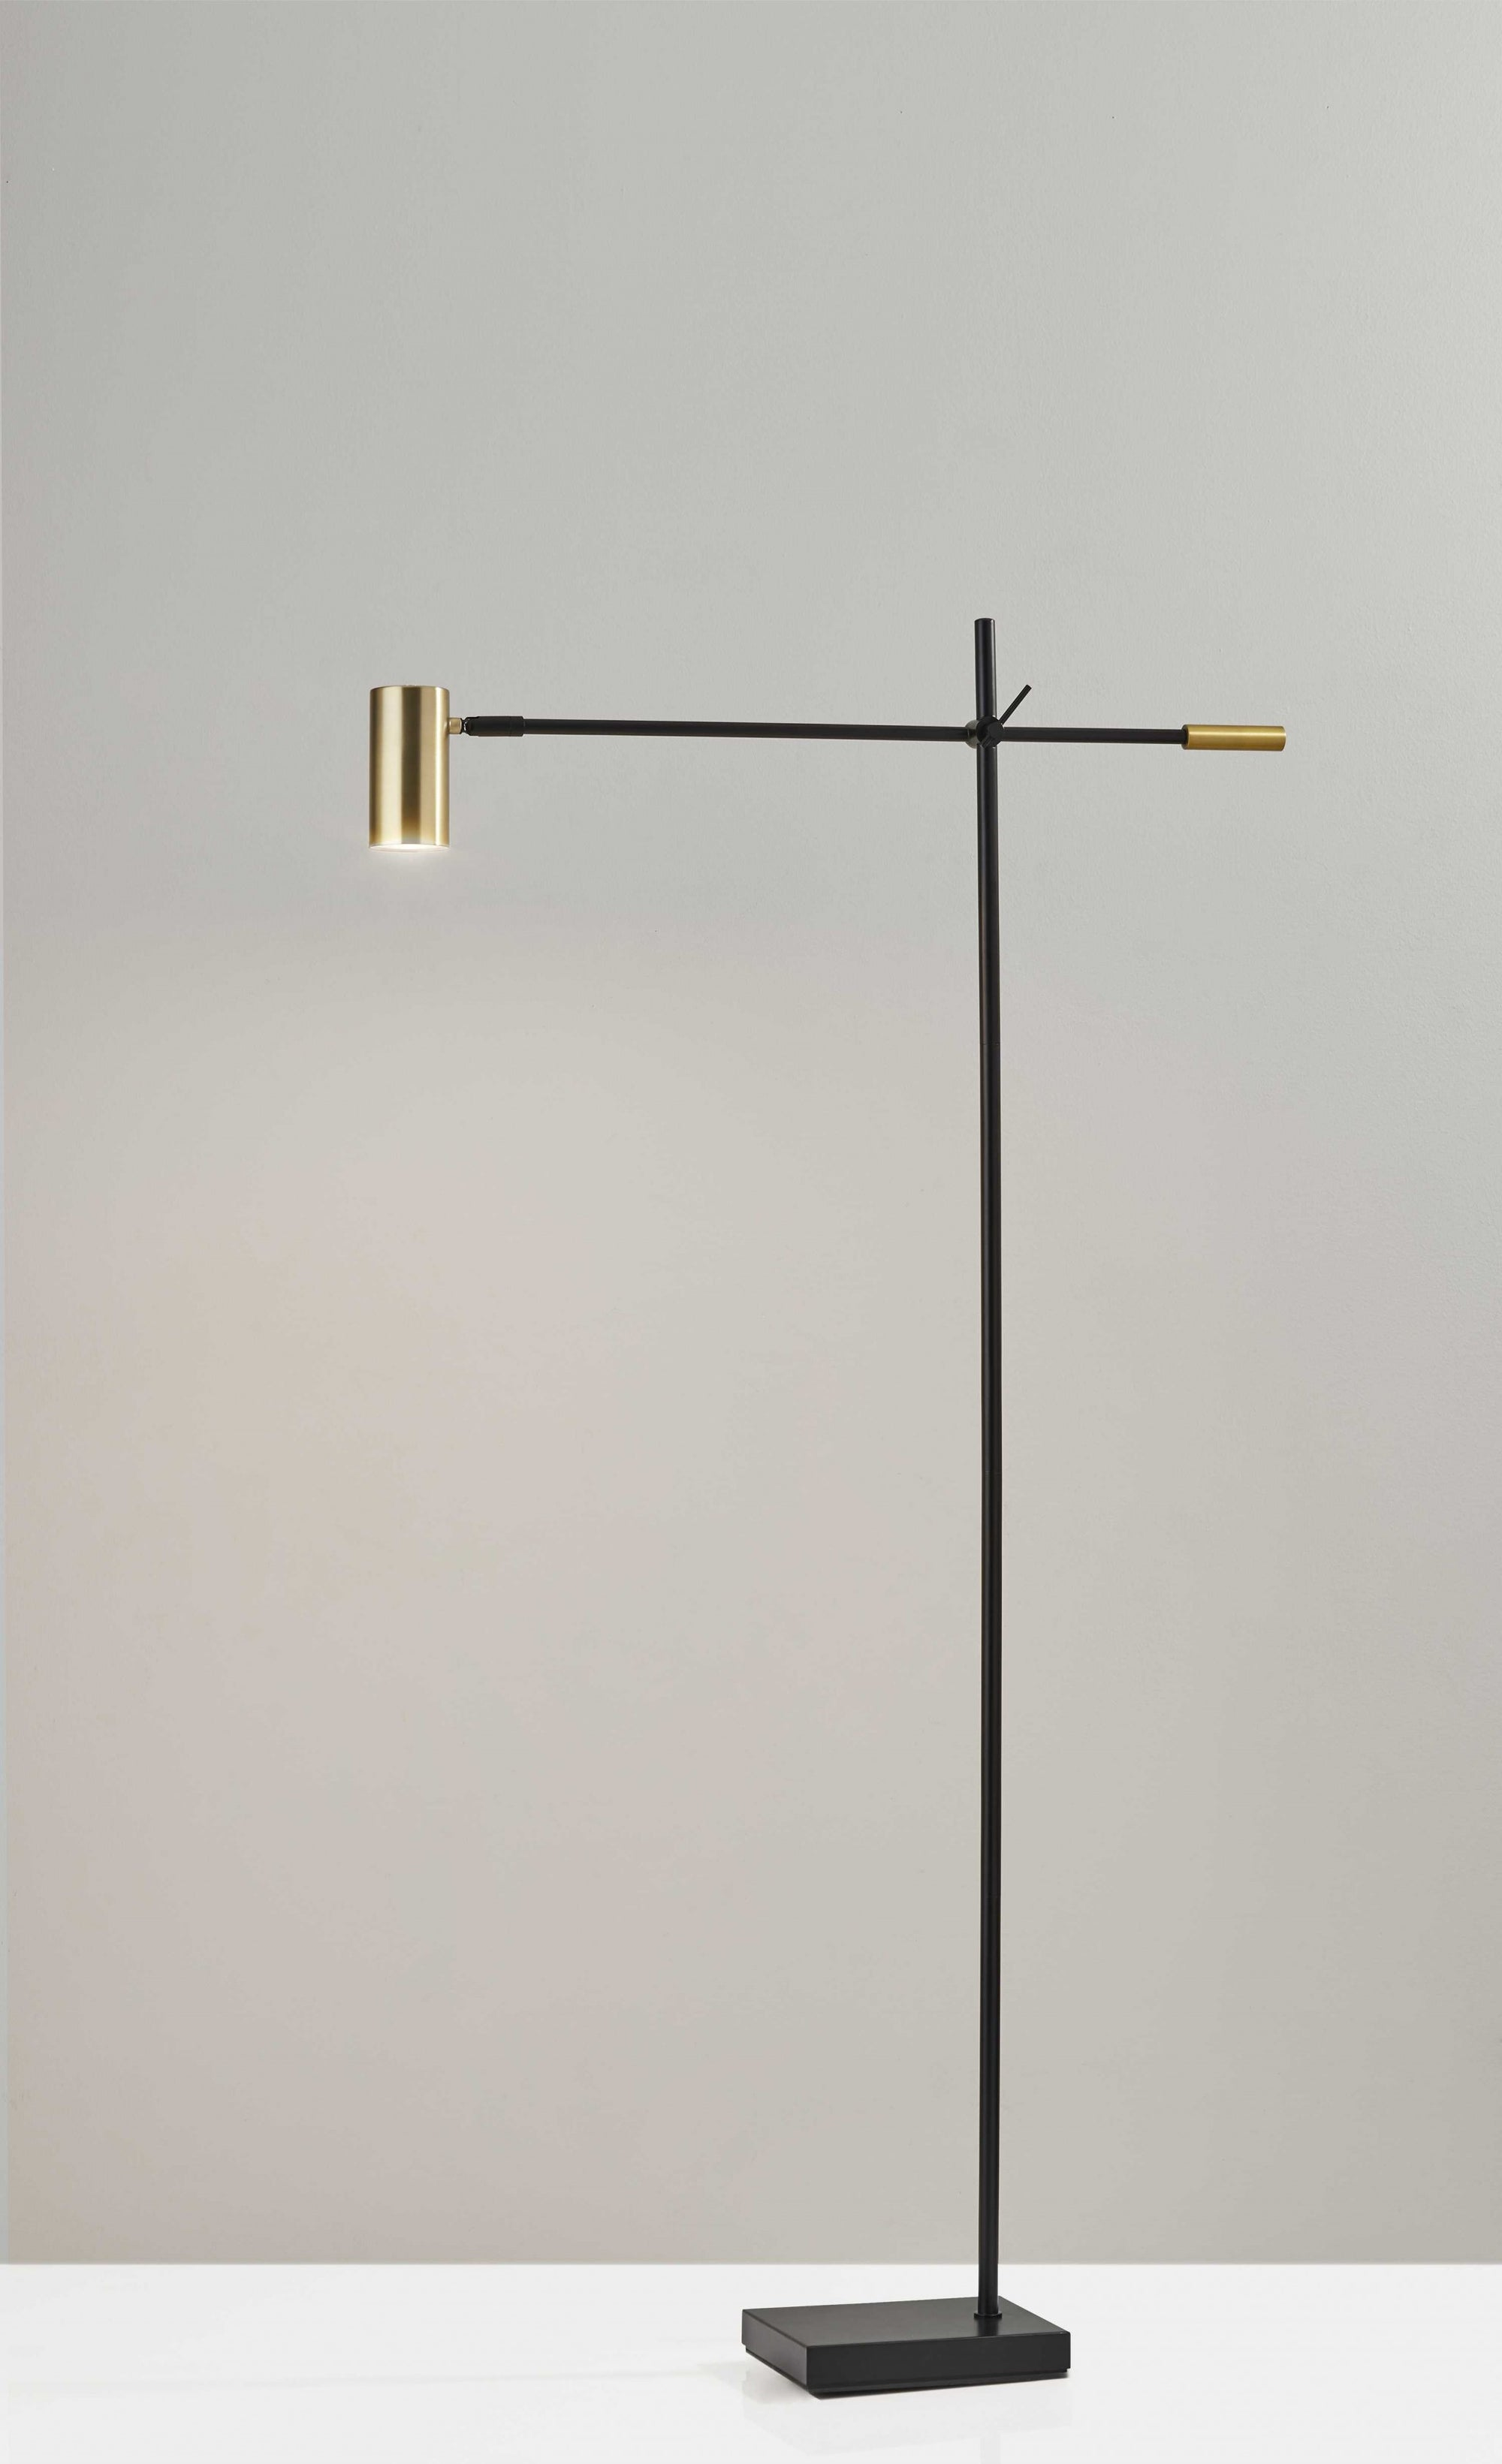 Black Metal Antique Brass Floor Lamp Tilt Arm LED Task Light